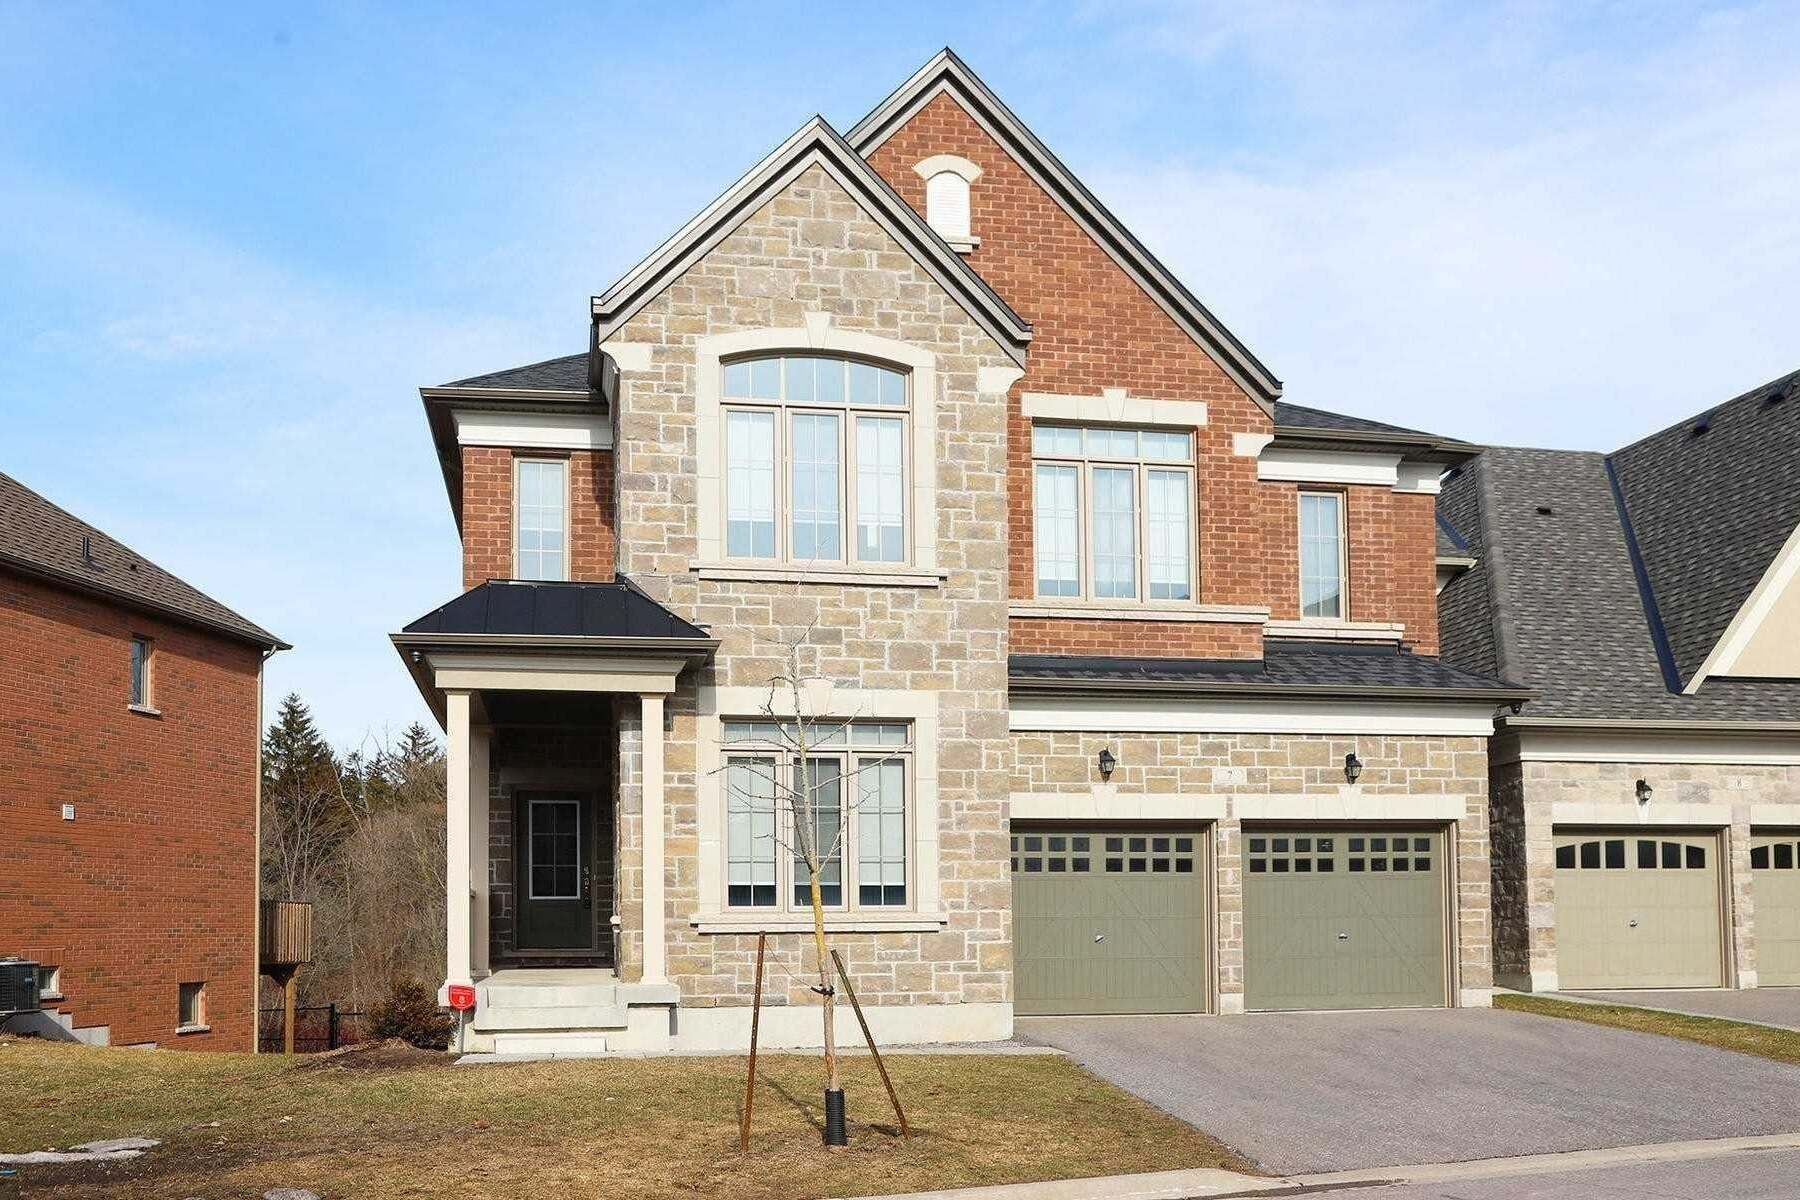 Buliding: 1815 Fairport Road, Pickering, ON